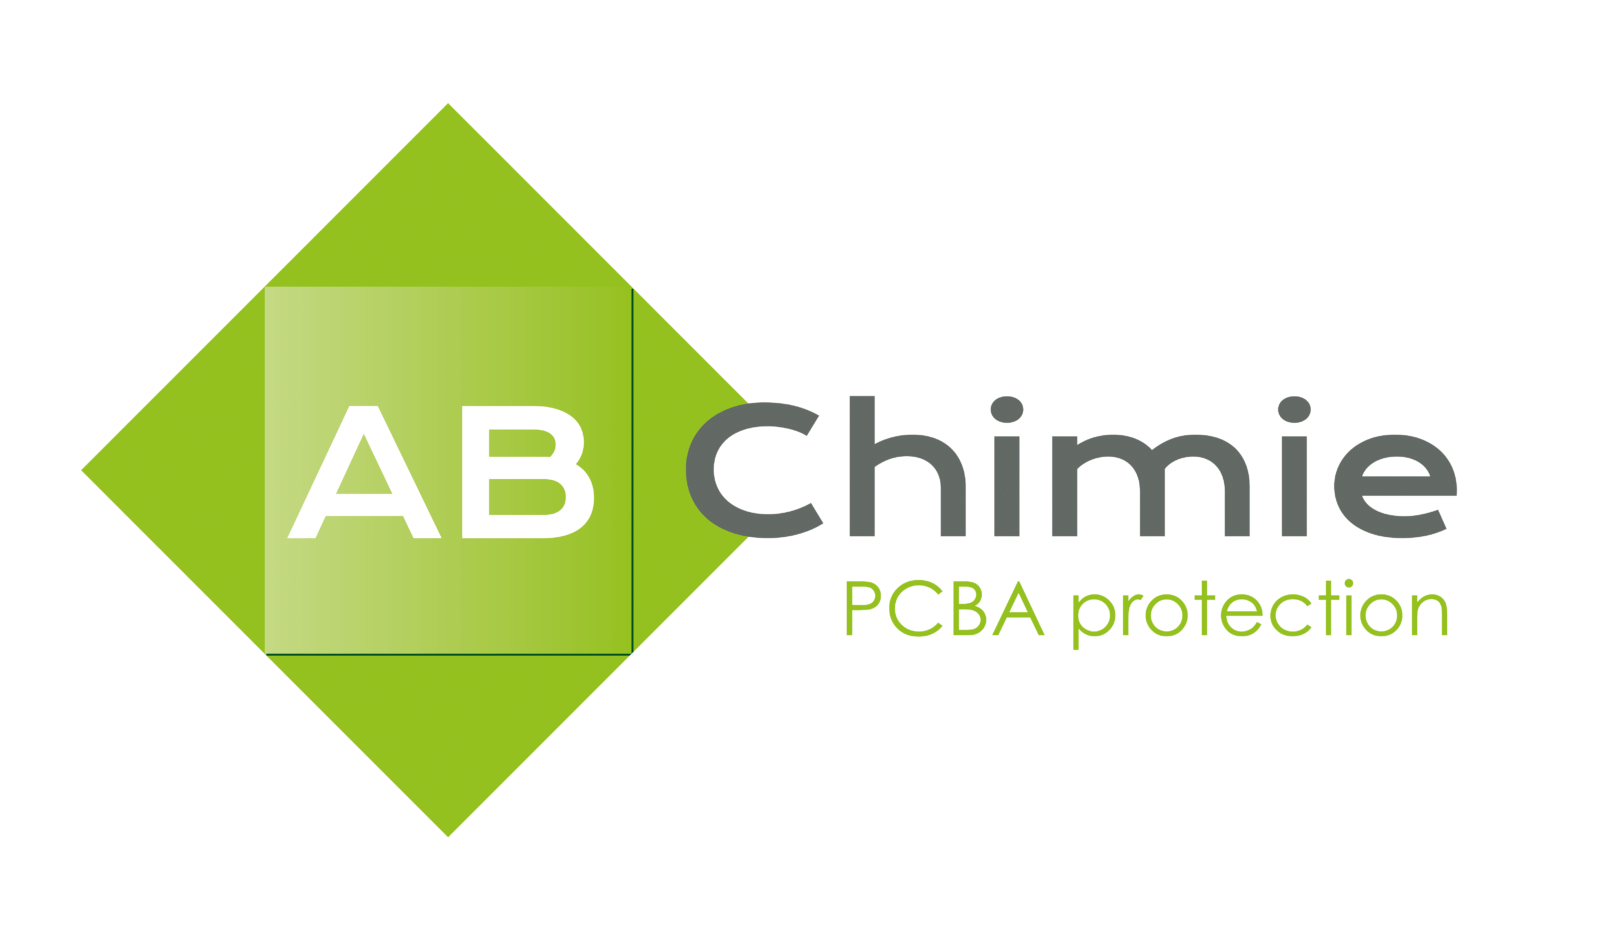 ABchimie PCBA Protection